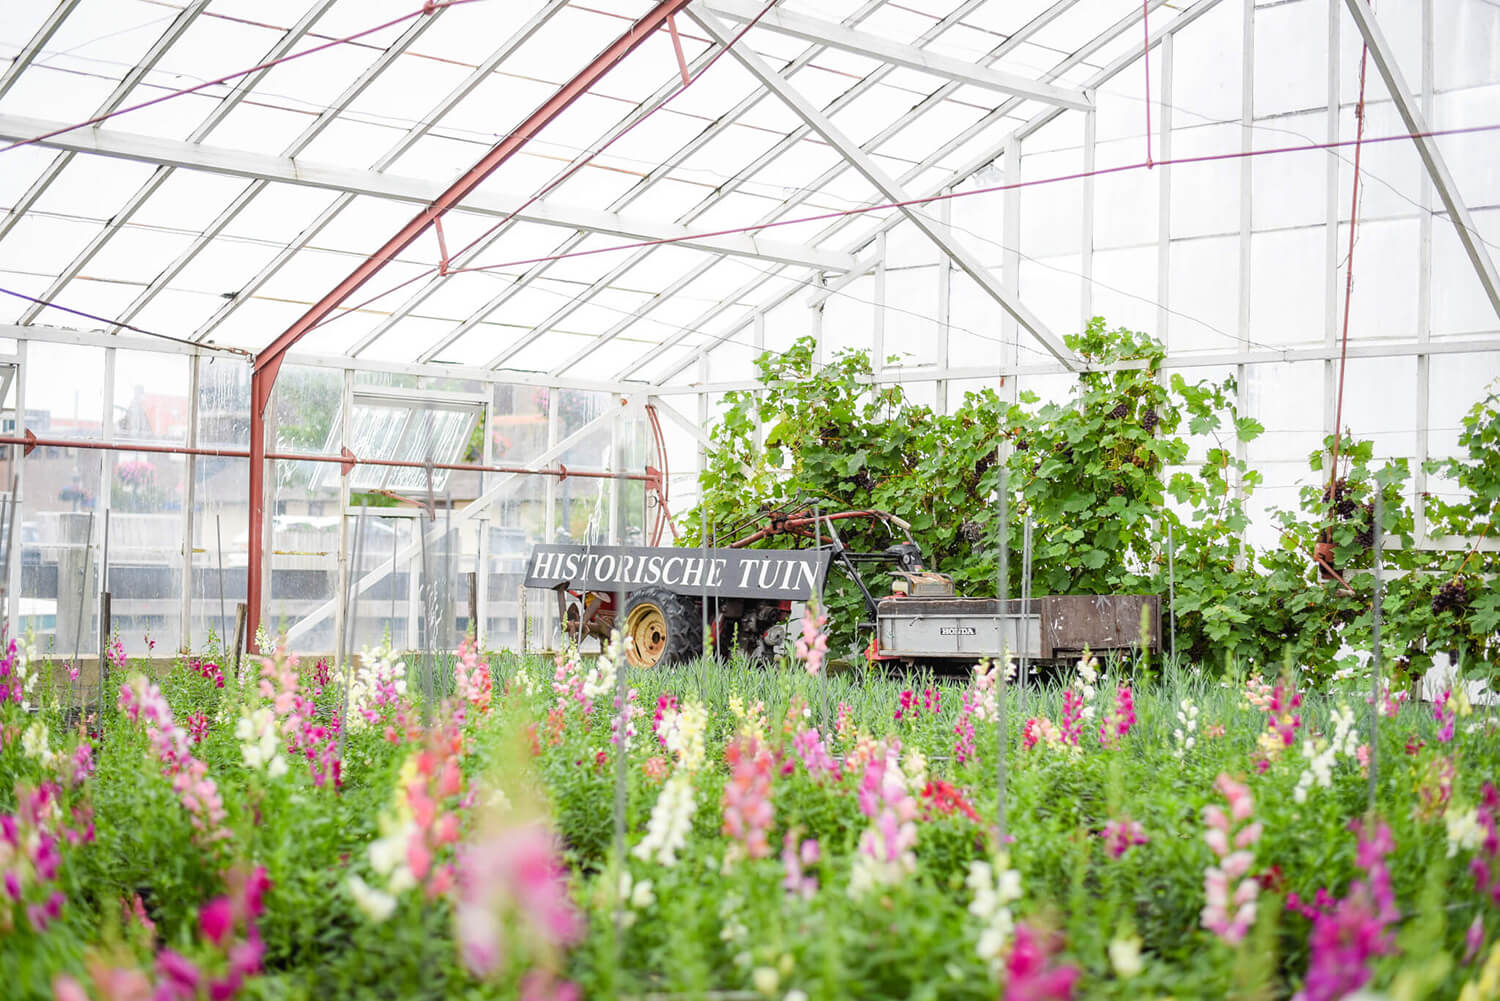 Things to do with flowers in Aalsmeer